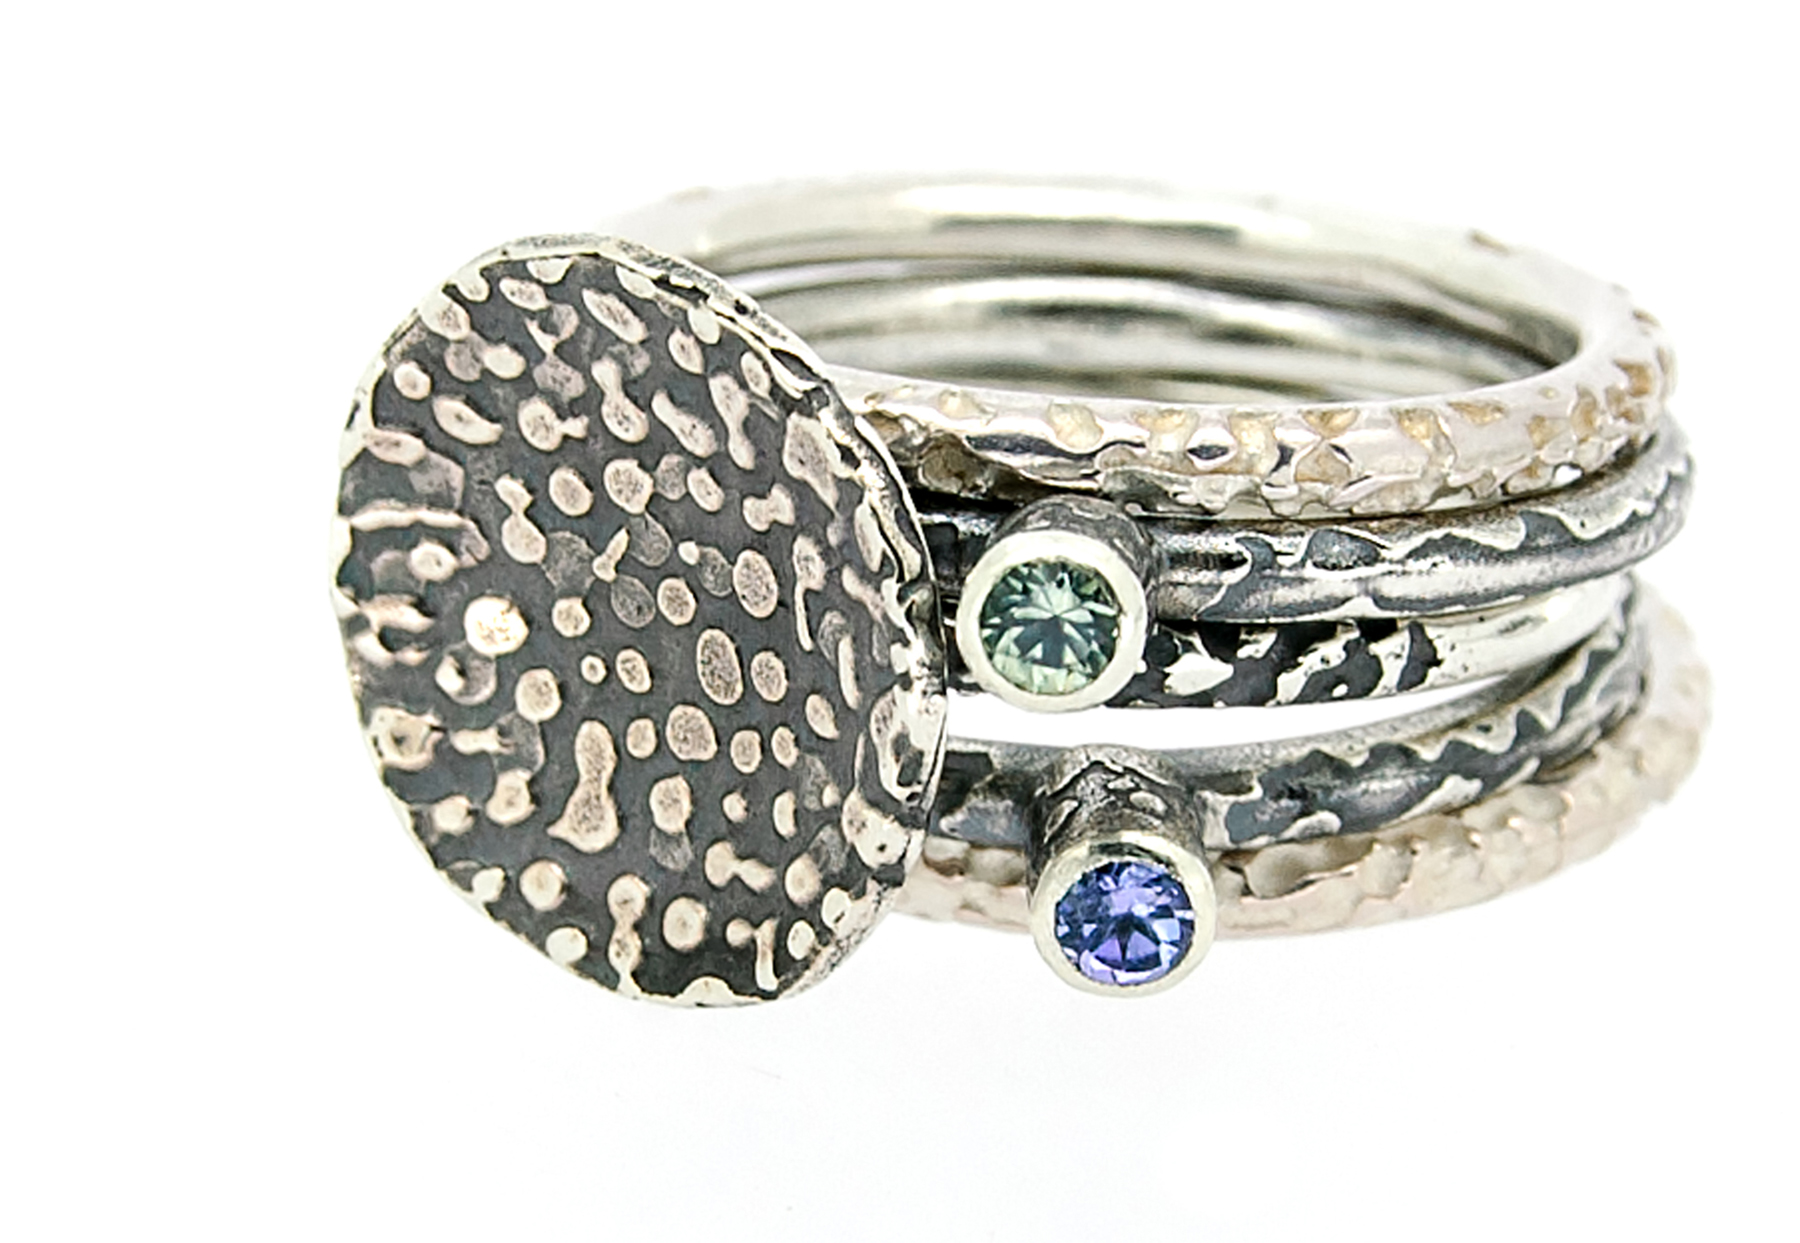 LisaRothwellYoung_stacking rings_2014_silver tanzanite green sapphire_WEB3